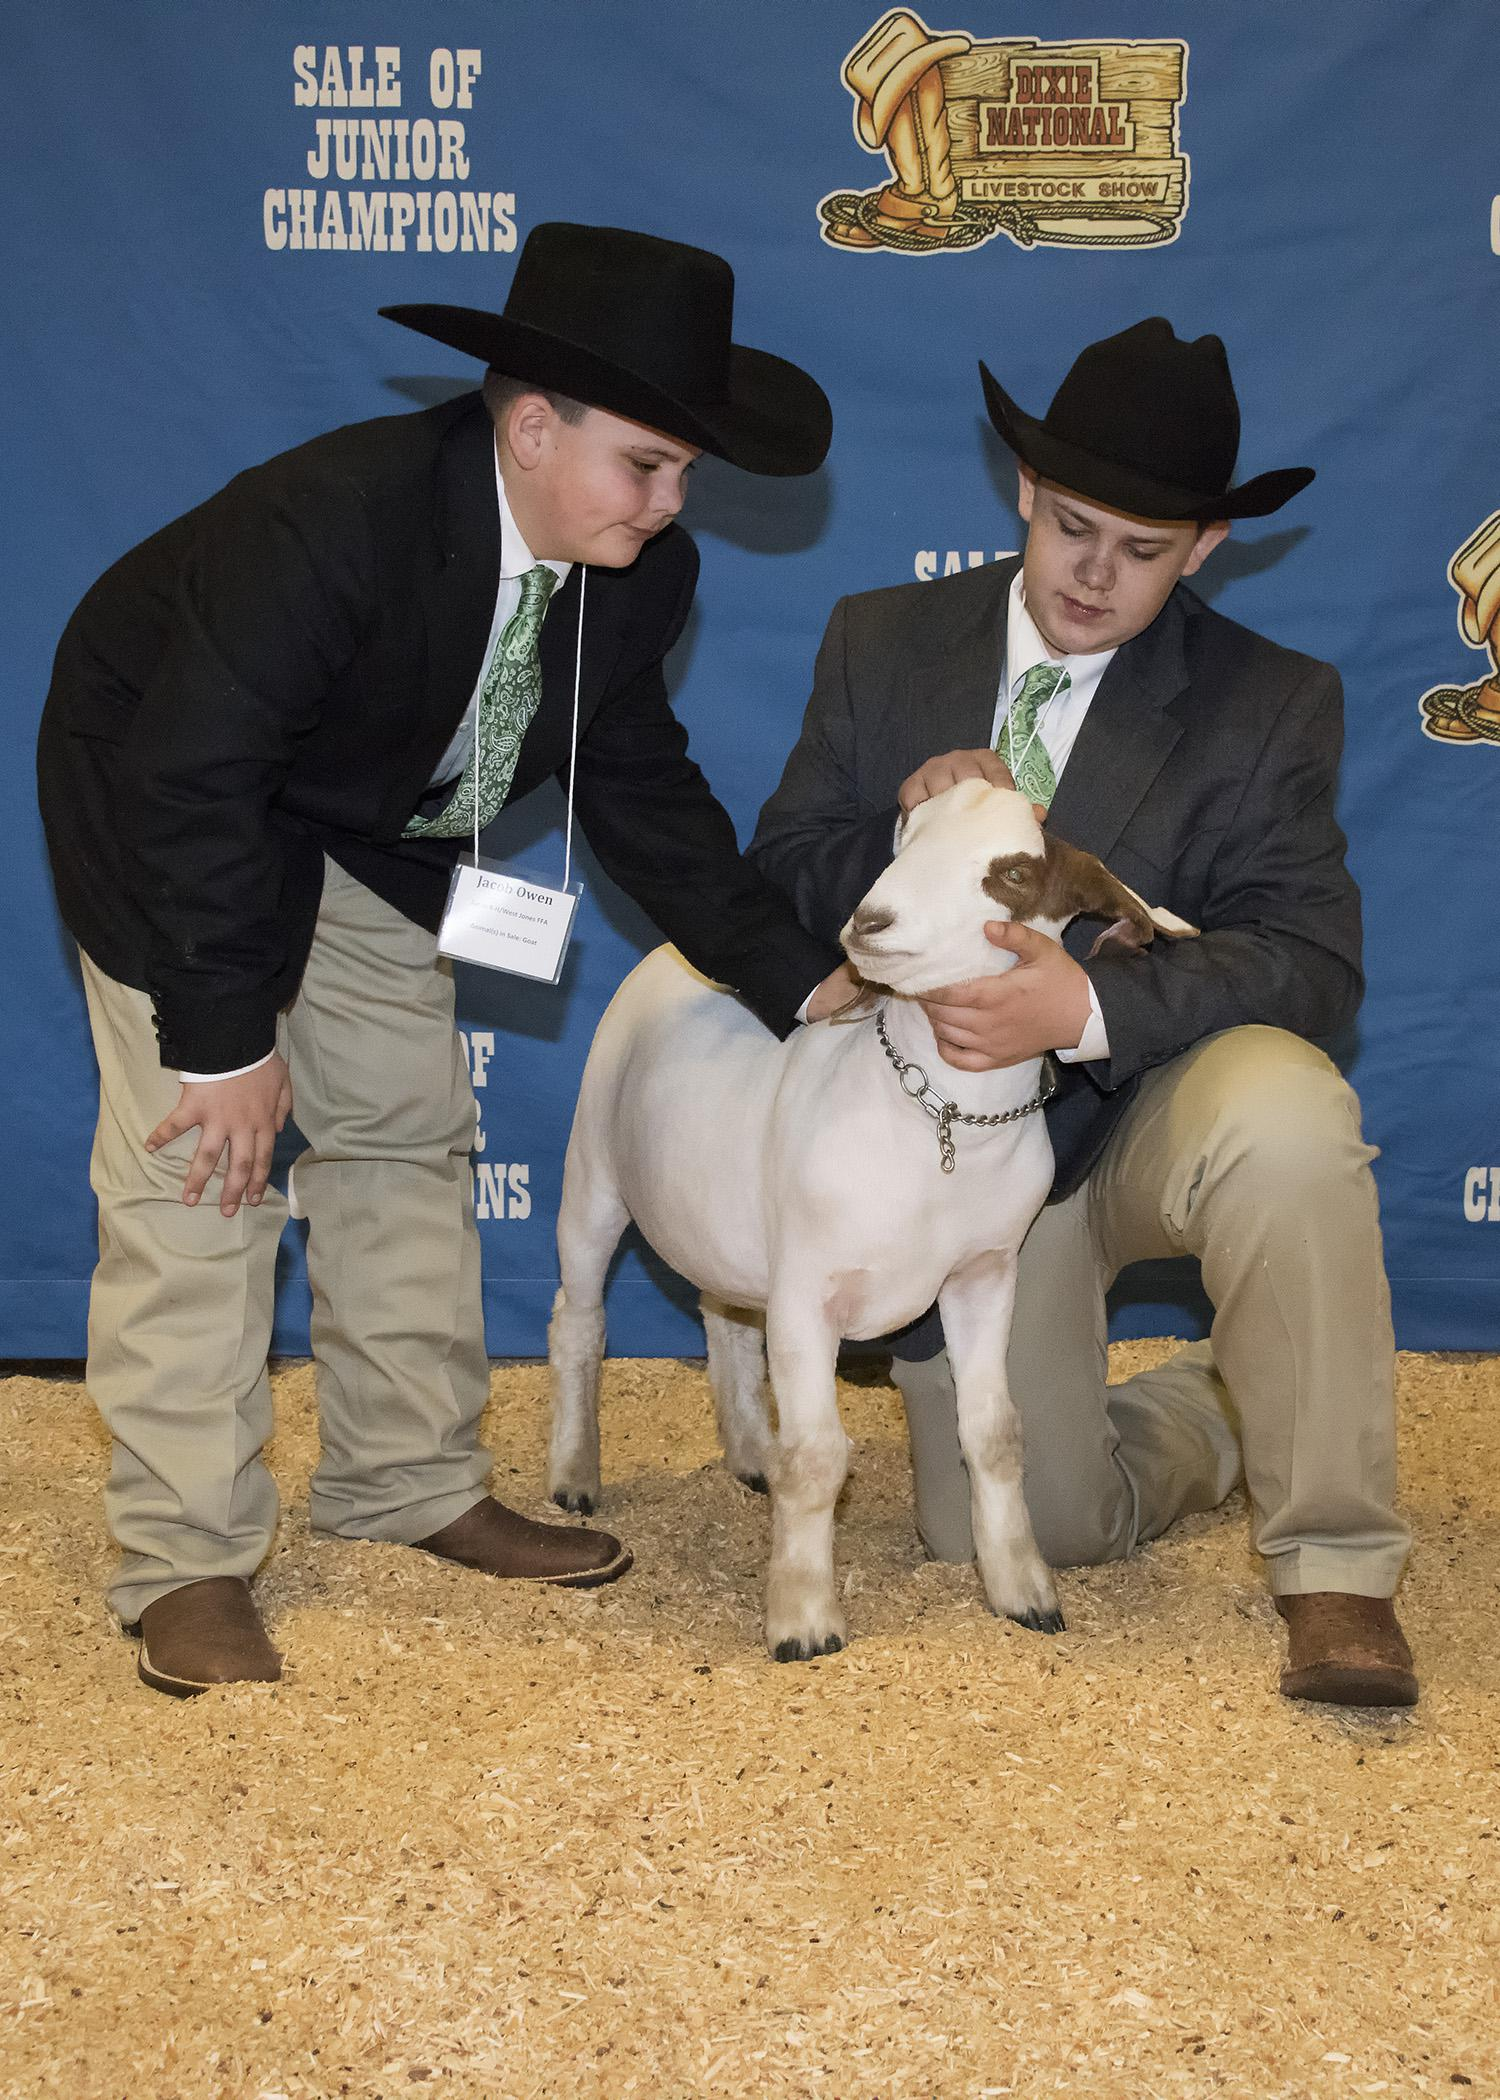 Jacob Owen, left, and his older brother, Tyler, prepare to enter the arena for the Dixie National Sale of Junior Champions with their market goat, Splits, on Feb. 12, 2015, in Jackson, Mississippi. (Photo by MSU Ag Communications/Kevin Hudson)